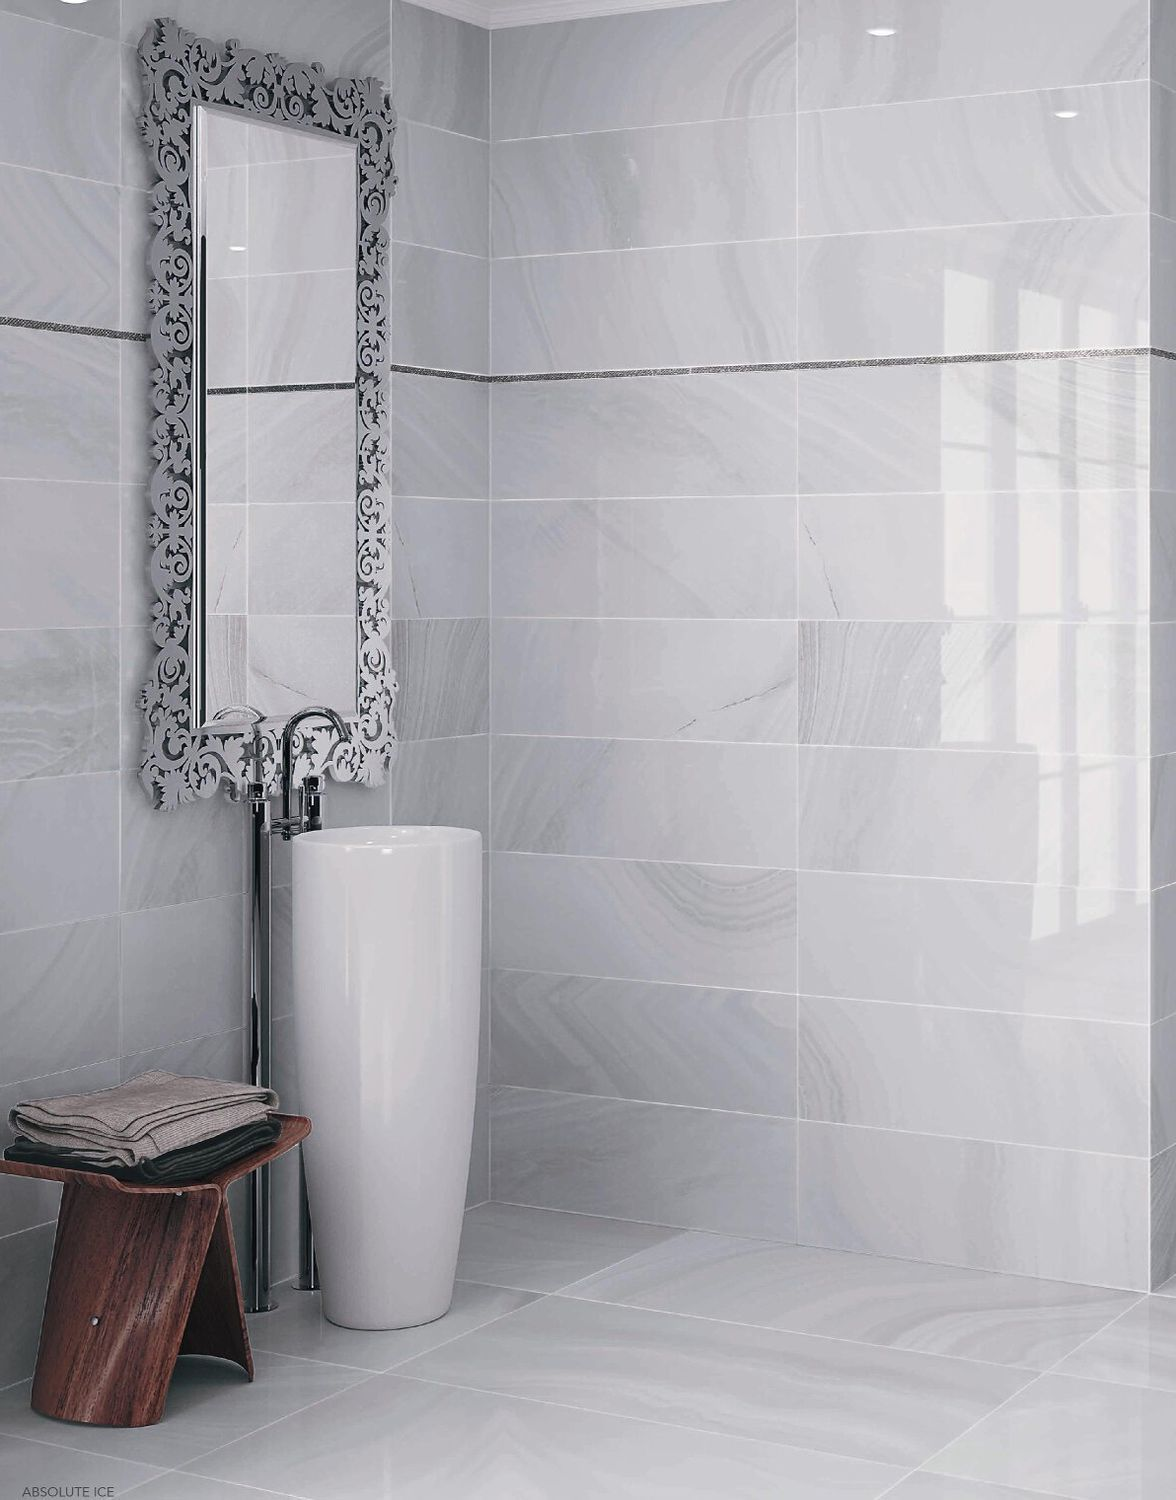 Bathroom tile / floor / ceramic / wave pattern - ABSOLUTE - Ceracasa ...